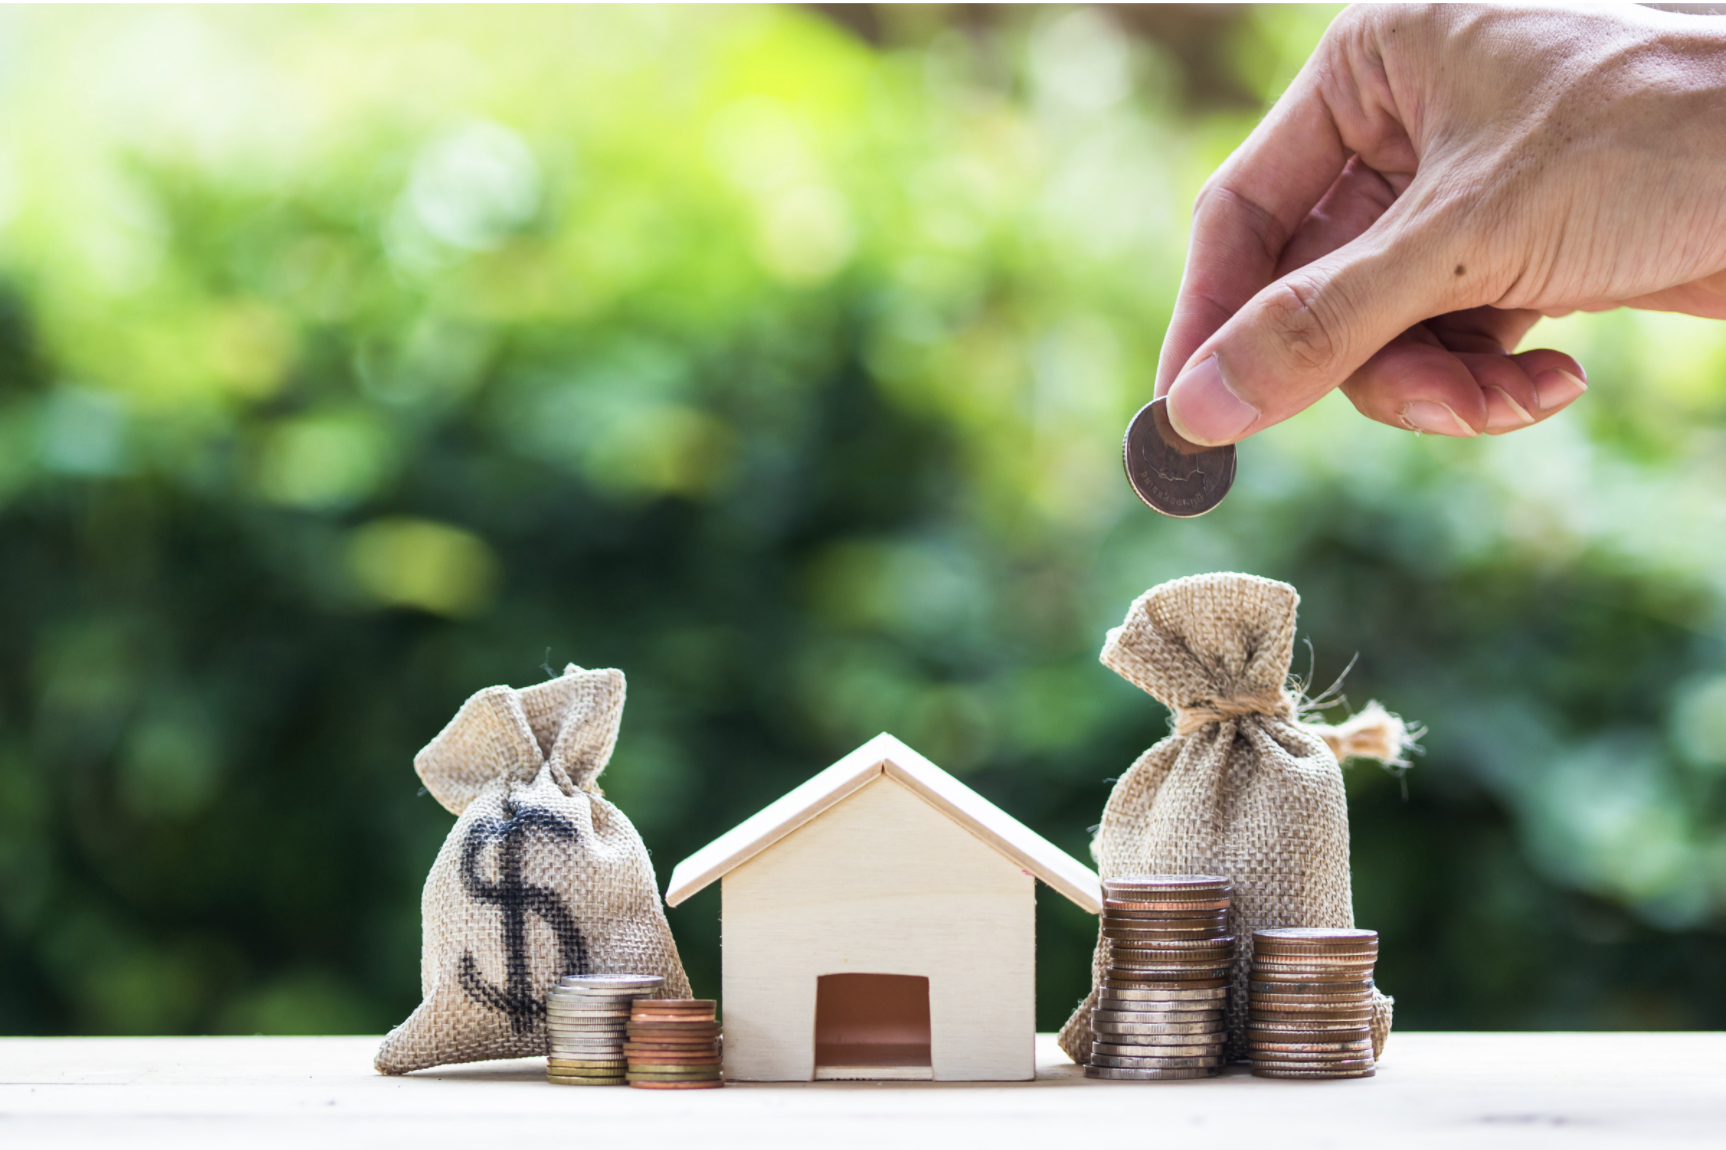 Small house with money around it representing hard money investing